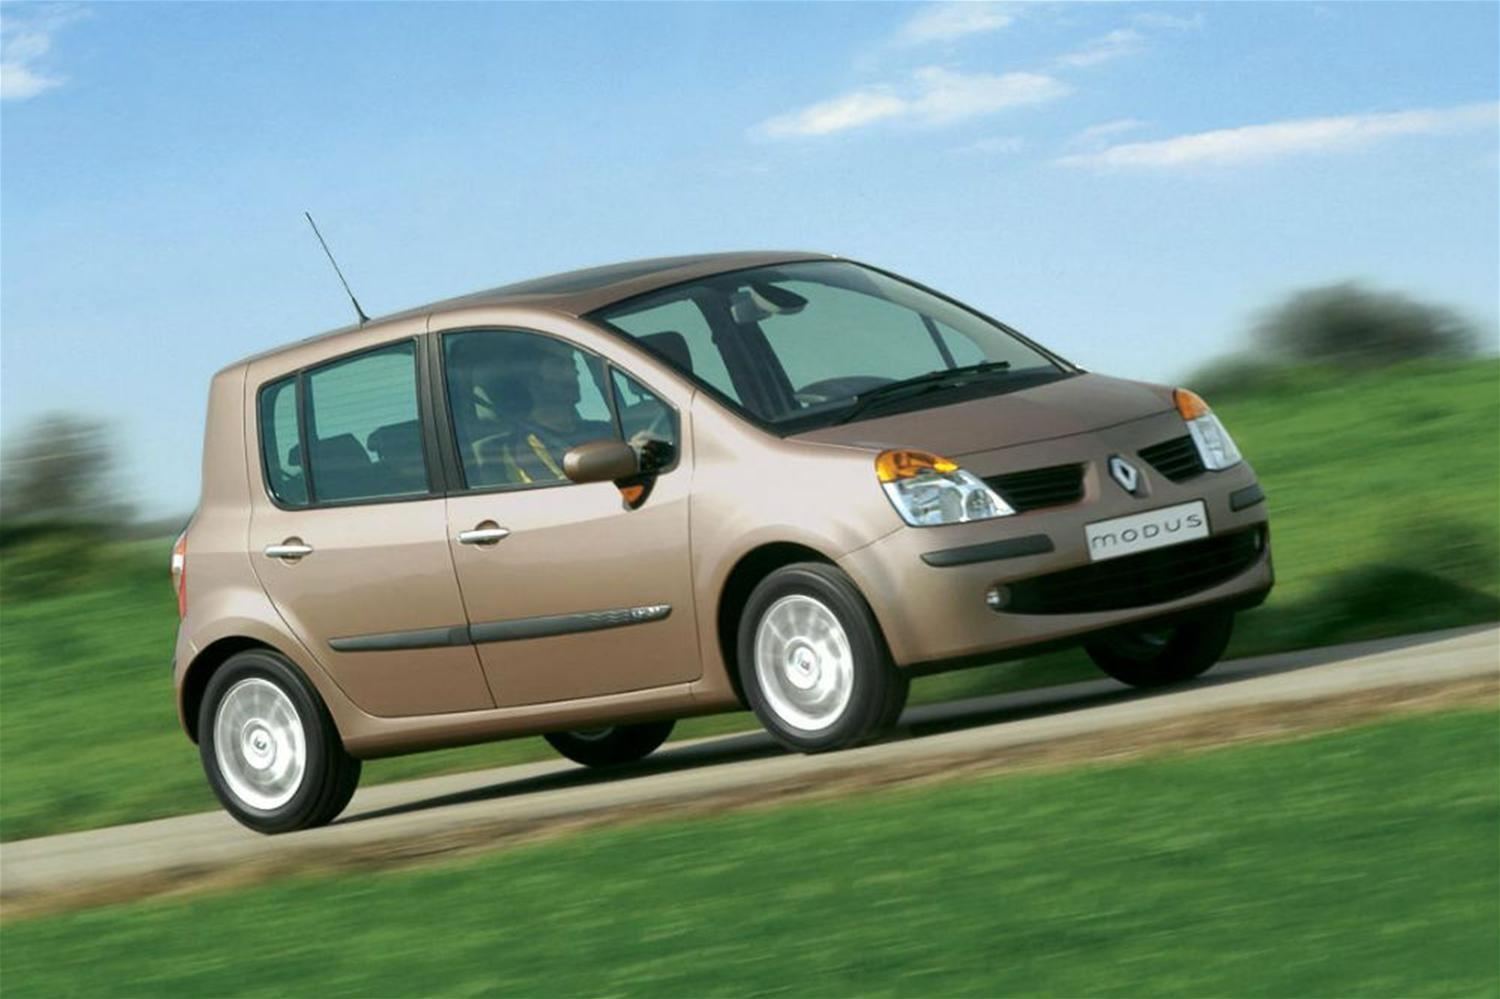 Best used small cars for under £3,000